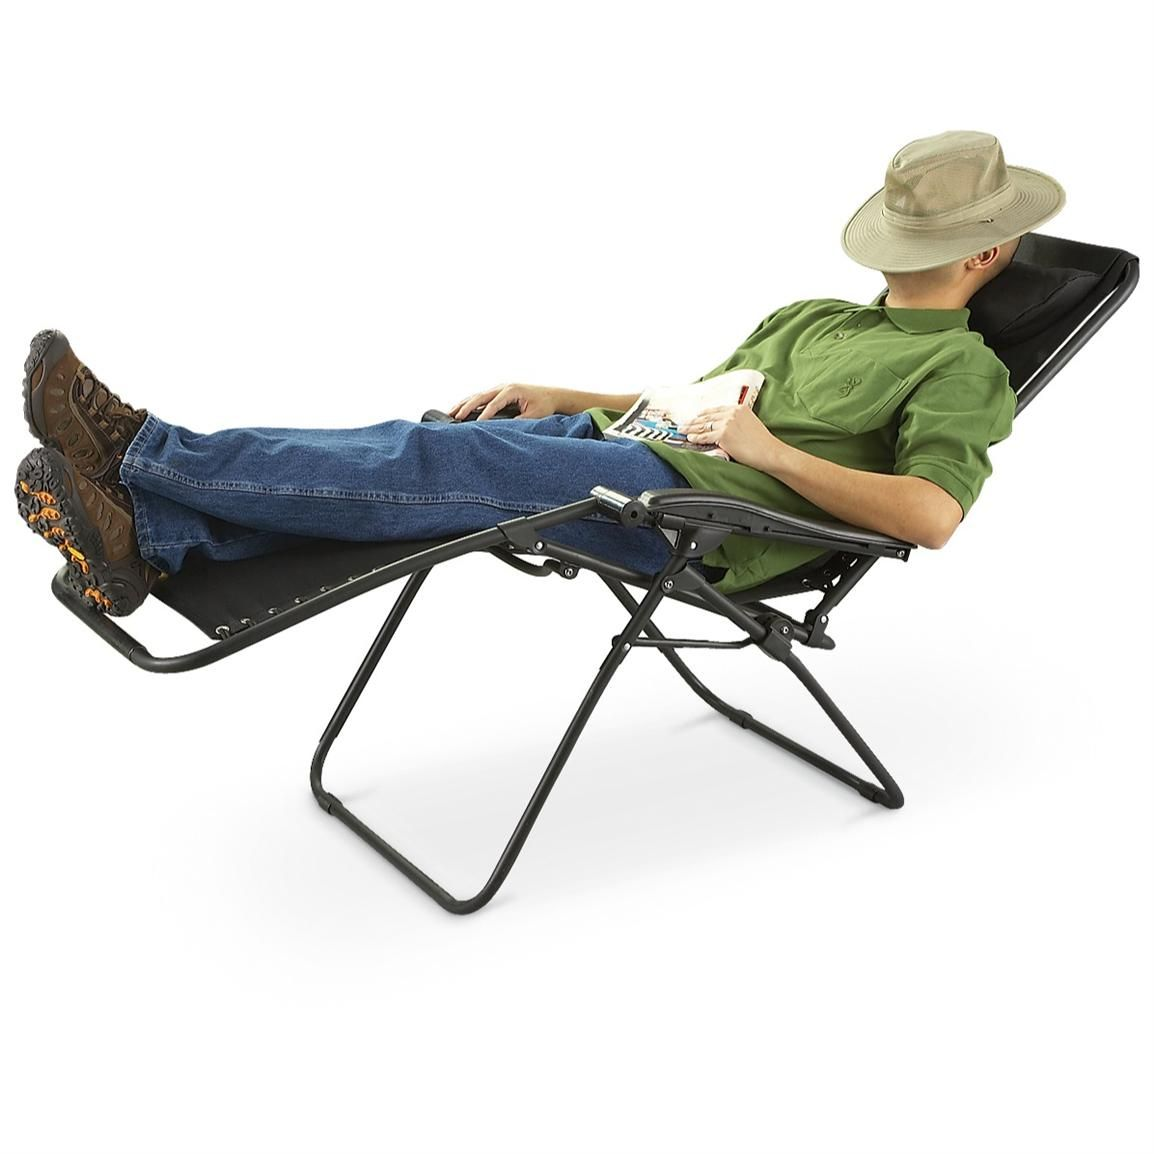 guide gear zero gravity lounger is so comfortable you can sleep in it